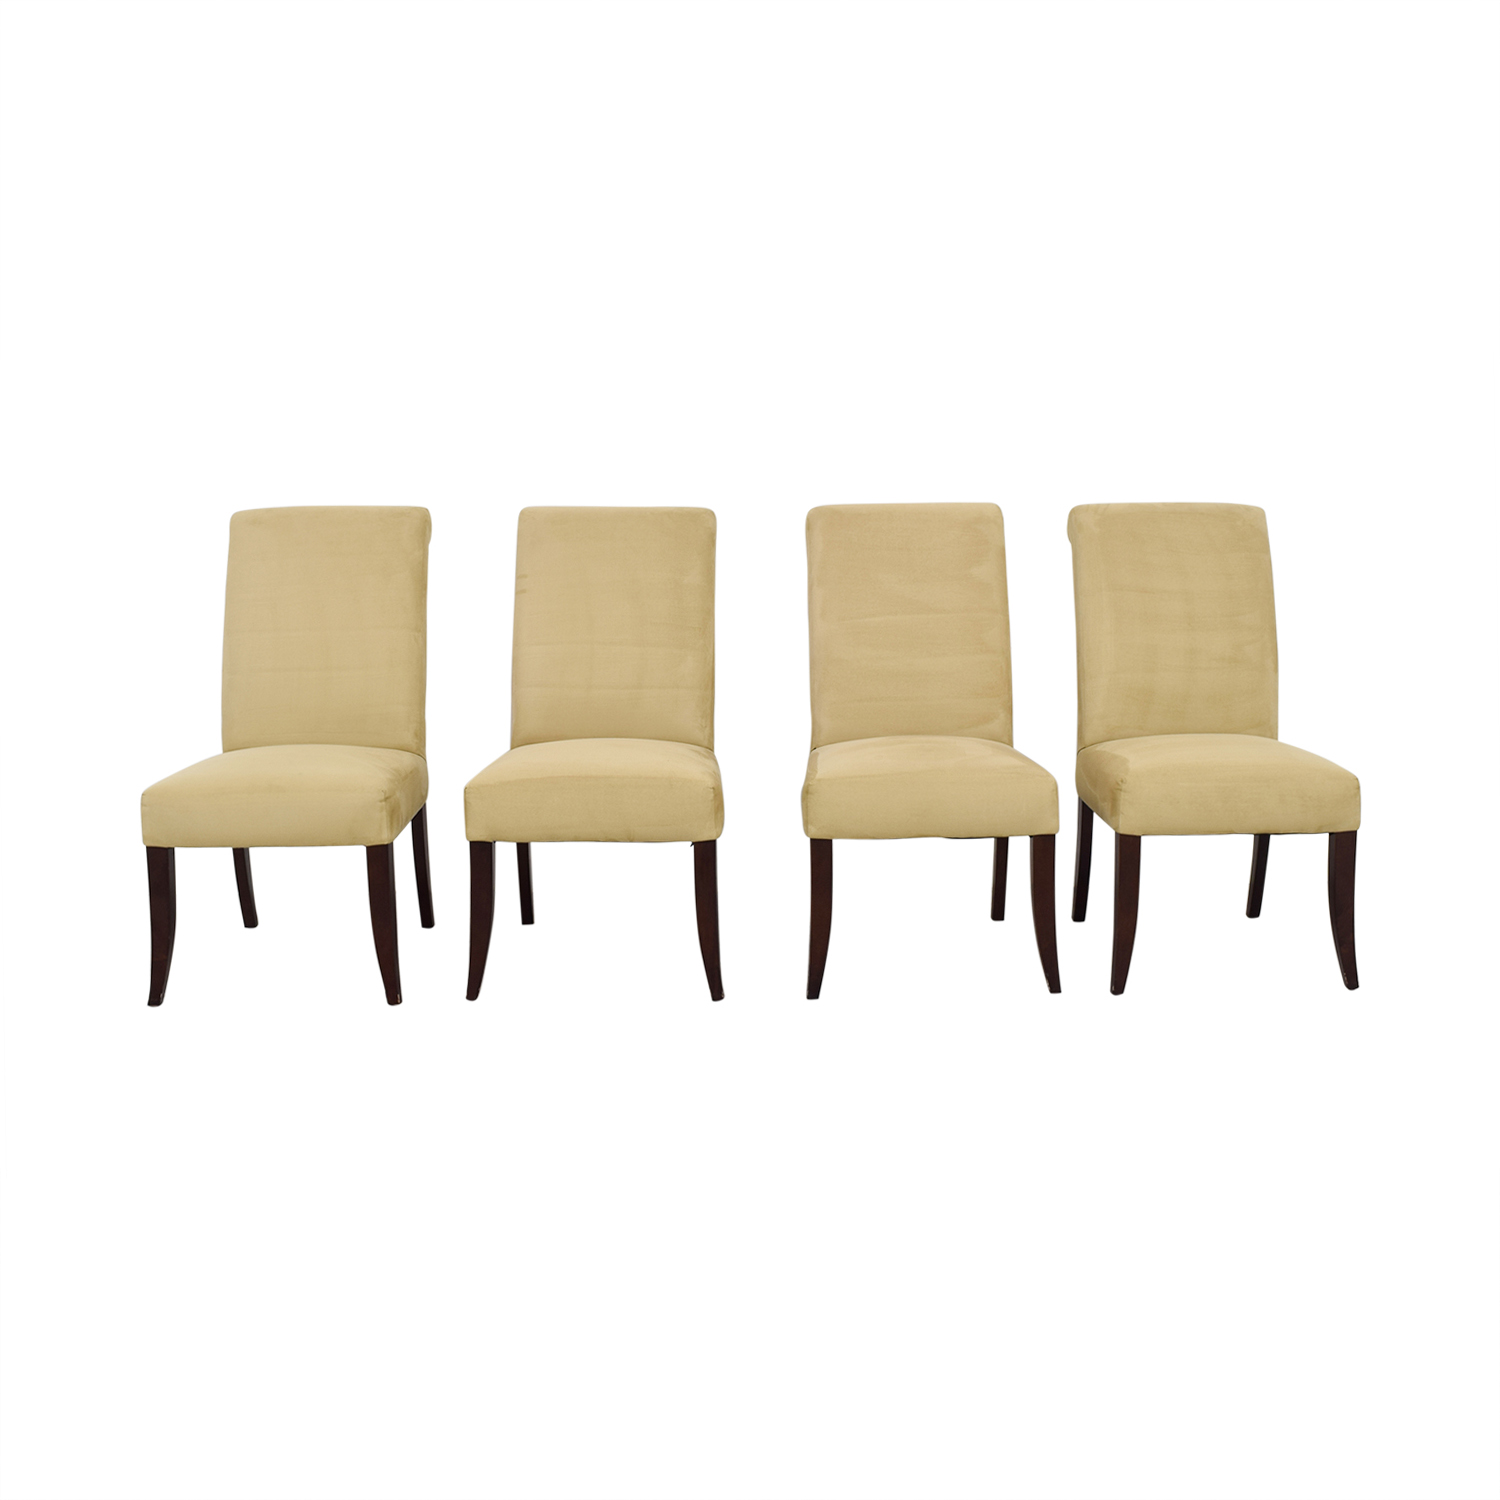 Pottery Barn Chairs Dining: Pottery Barn Pottery Barn Beige Upholstered